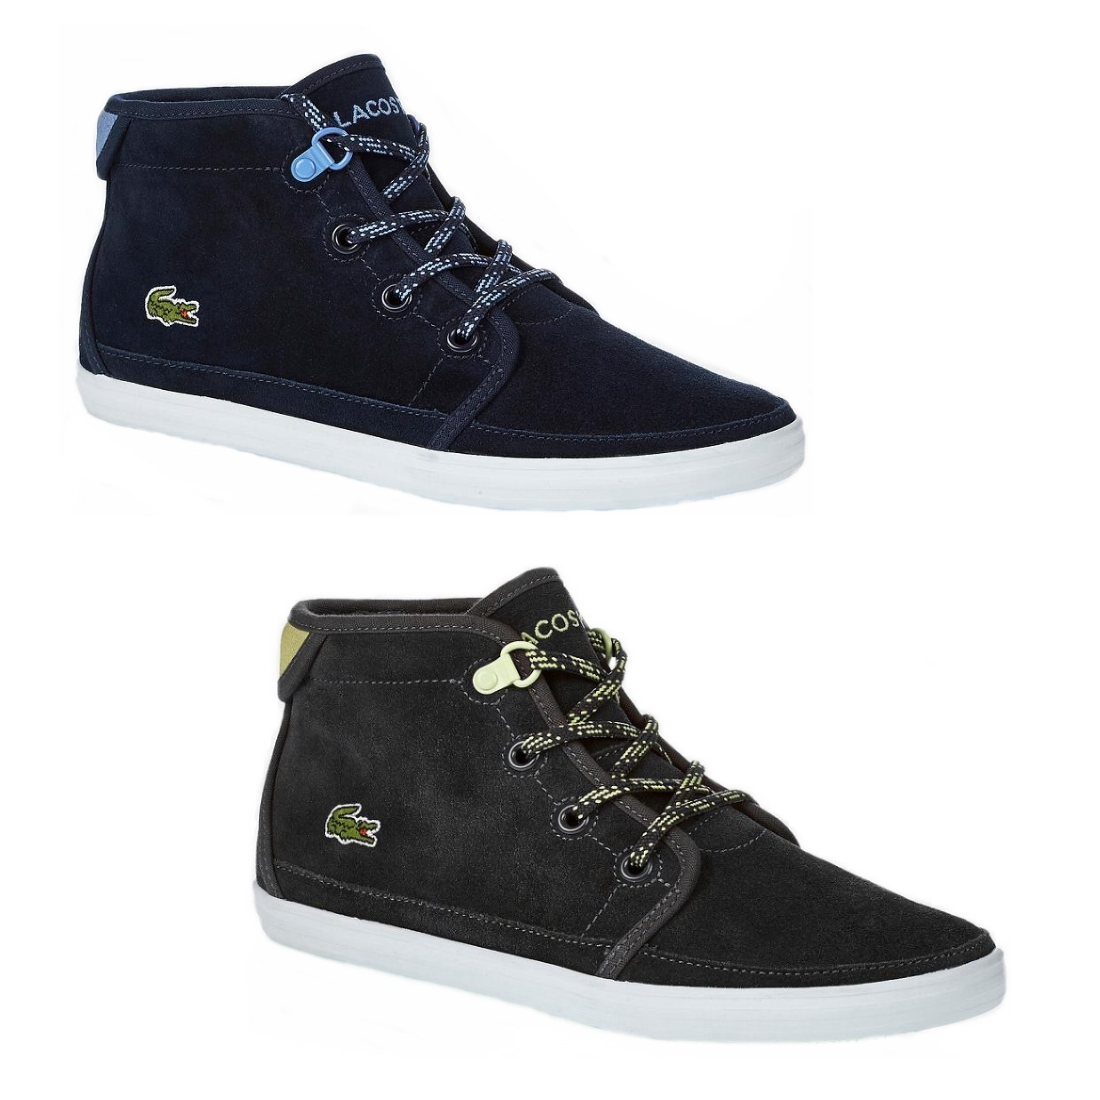 lacoste ziane chukka sneaker hi top turnschuhe schuhe damen grau blau leder ebay. Black Bedroom Furniture Sets. Home Design Ideas